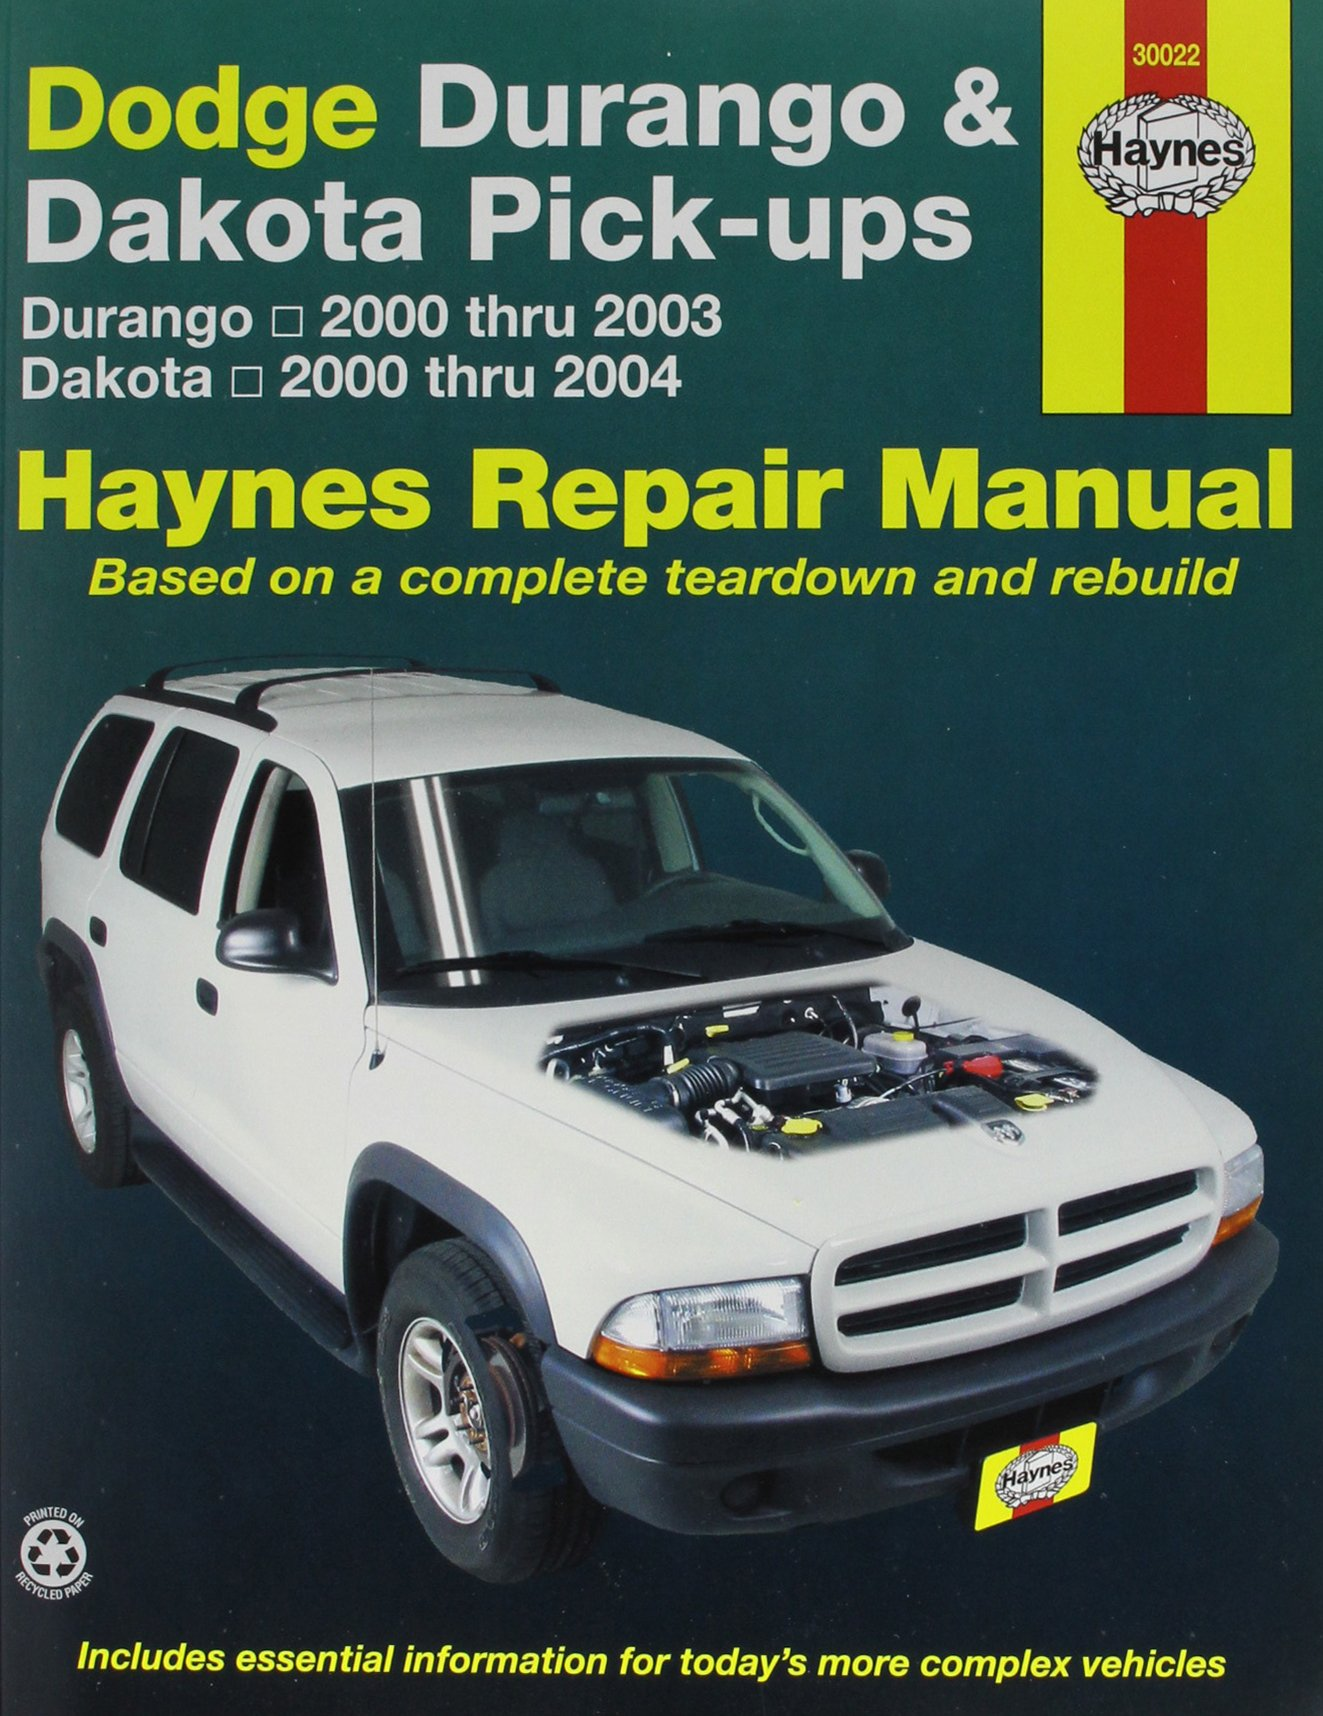 Dodge Durango and Dakota Pick-ups (2000-2003) Repair Manual: 0038345300226:  Amazon.com: Books